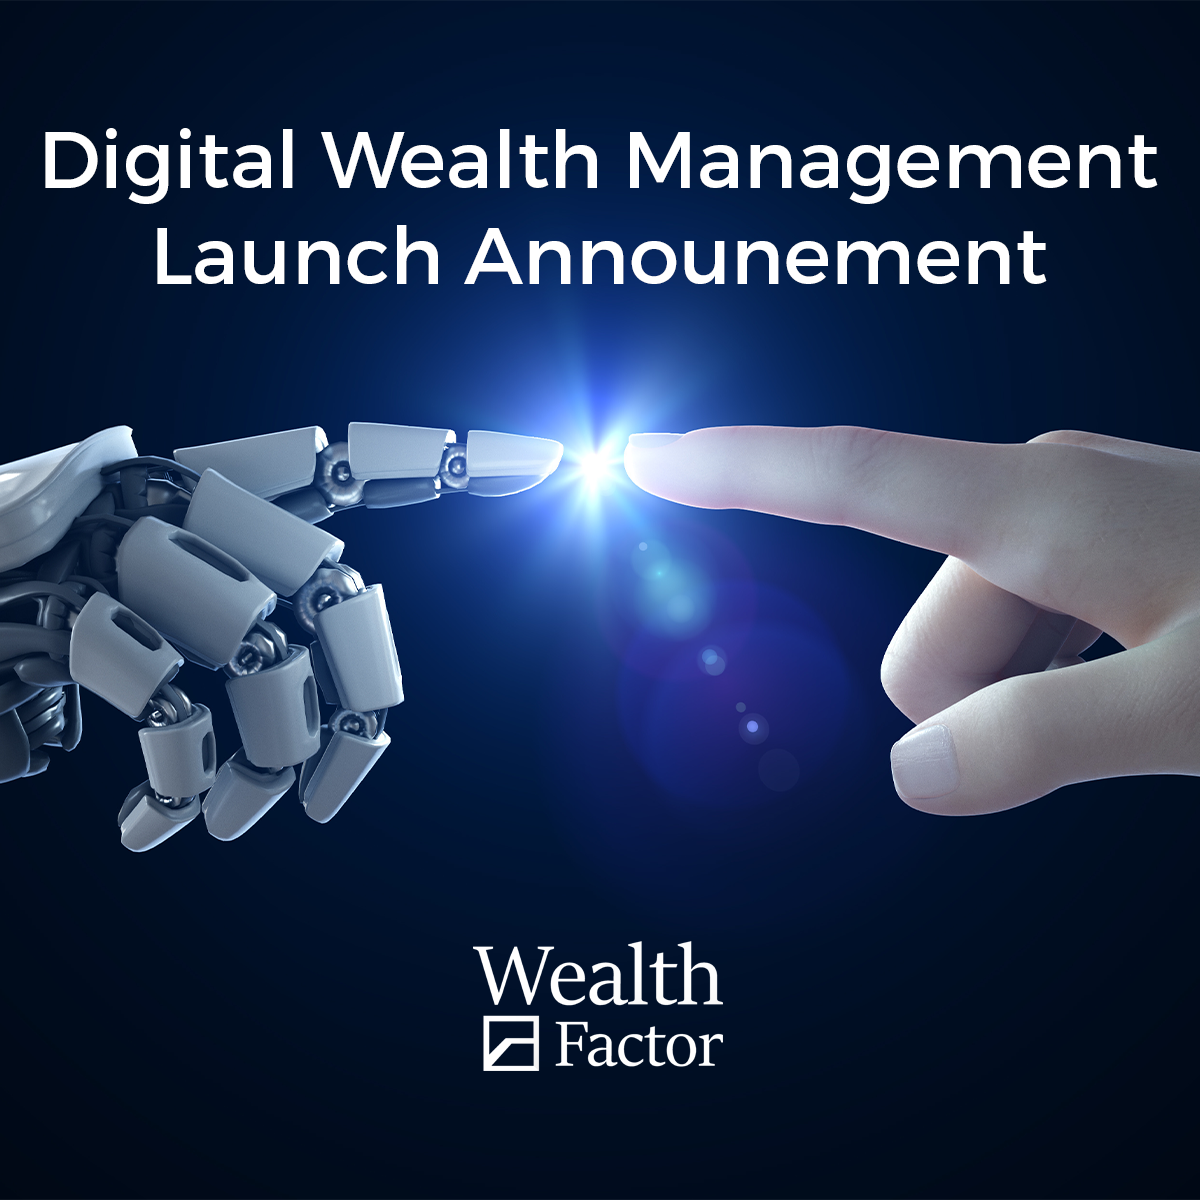 Digital Wealth Management - Launch Announcement